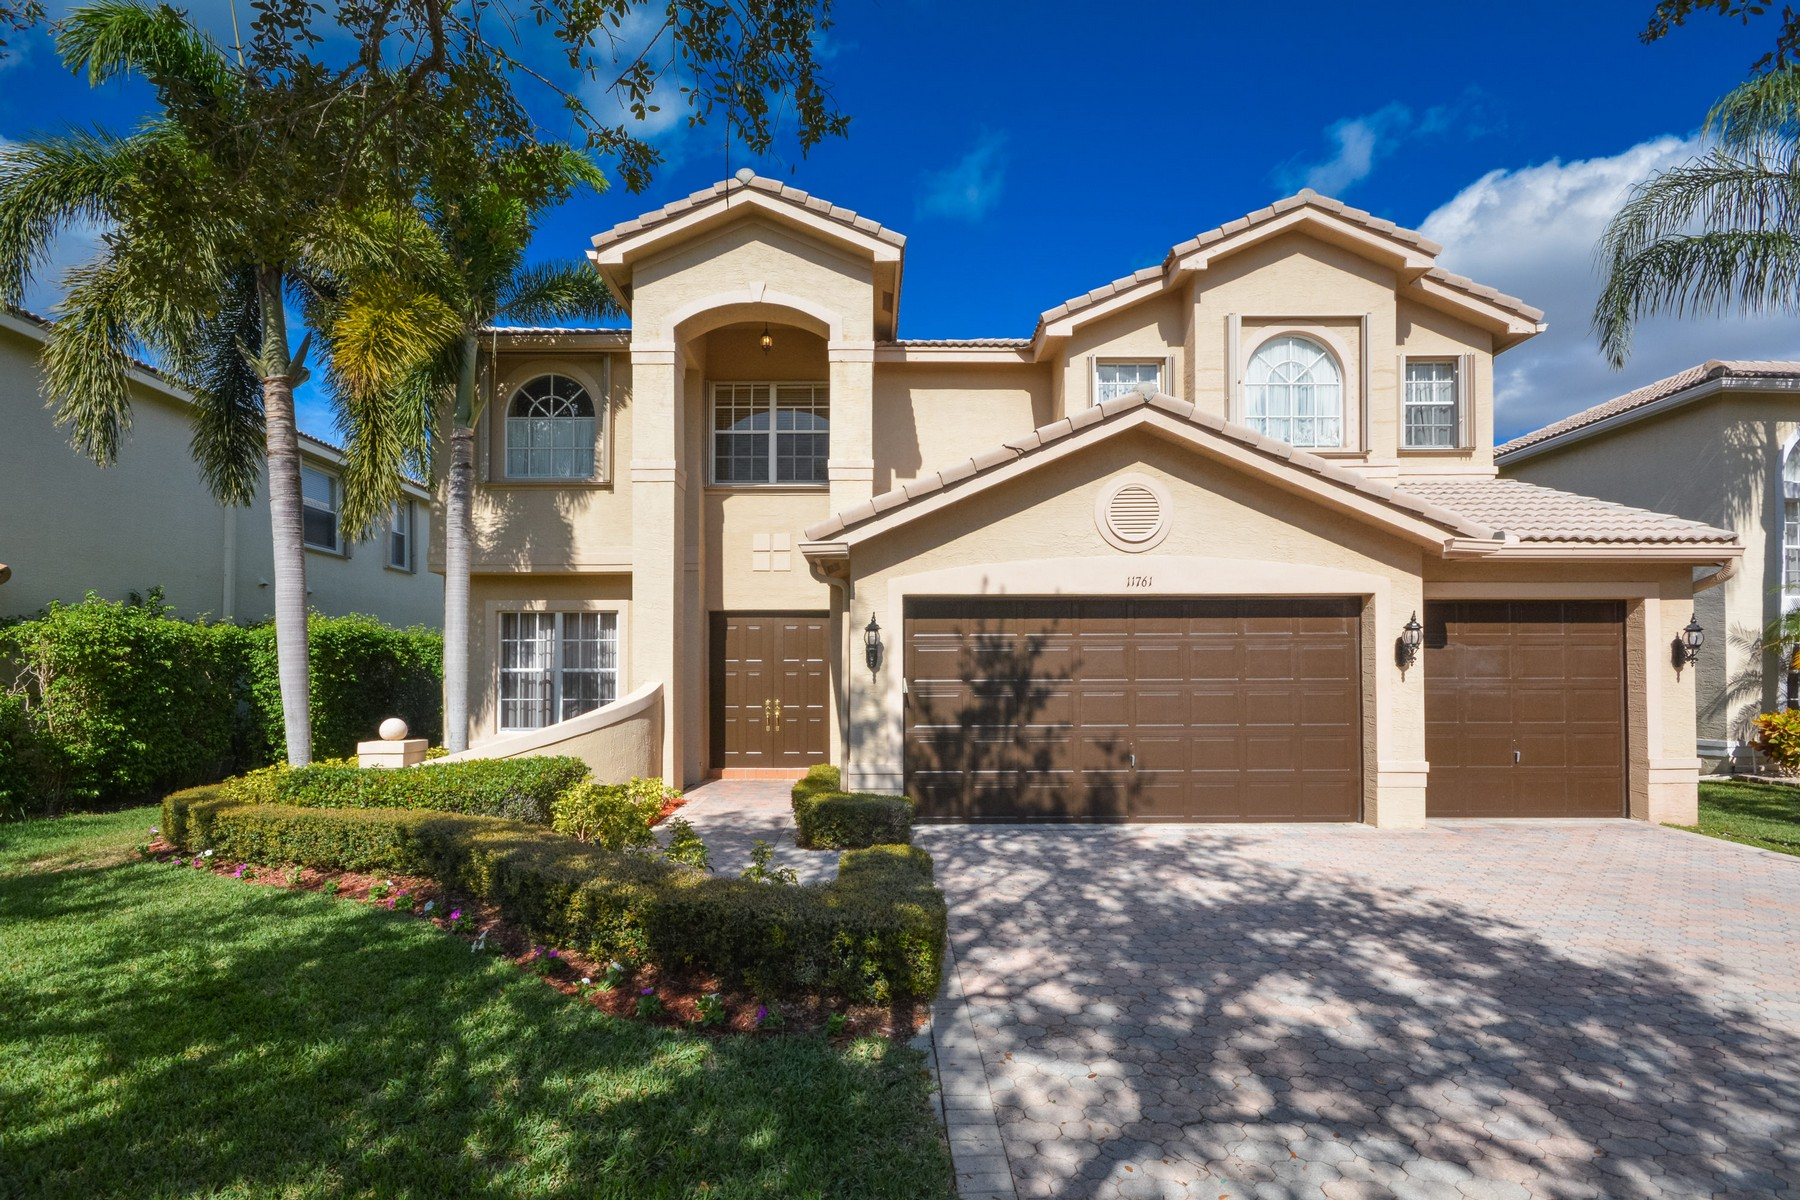 Single Family Home for Sale at 11761 Preservation Ln , Boca Raton, FL 33498 11761 Preservation Ln, Boca Raton, Florida, 33498 United States